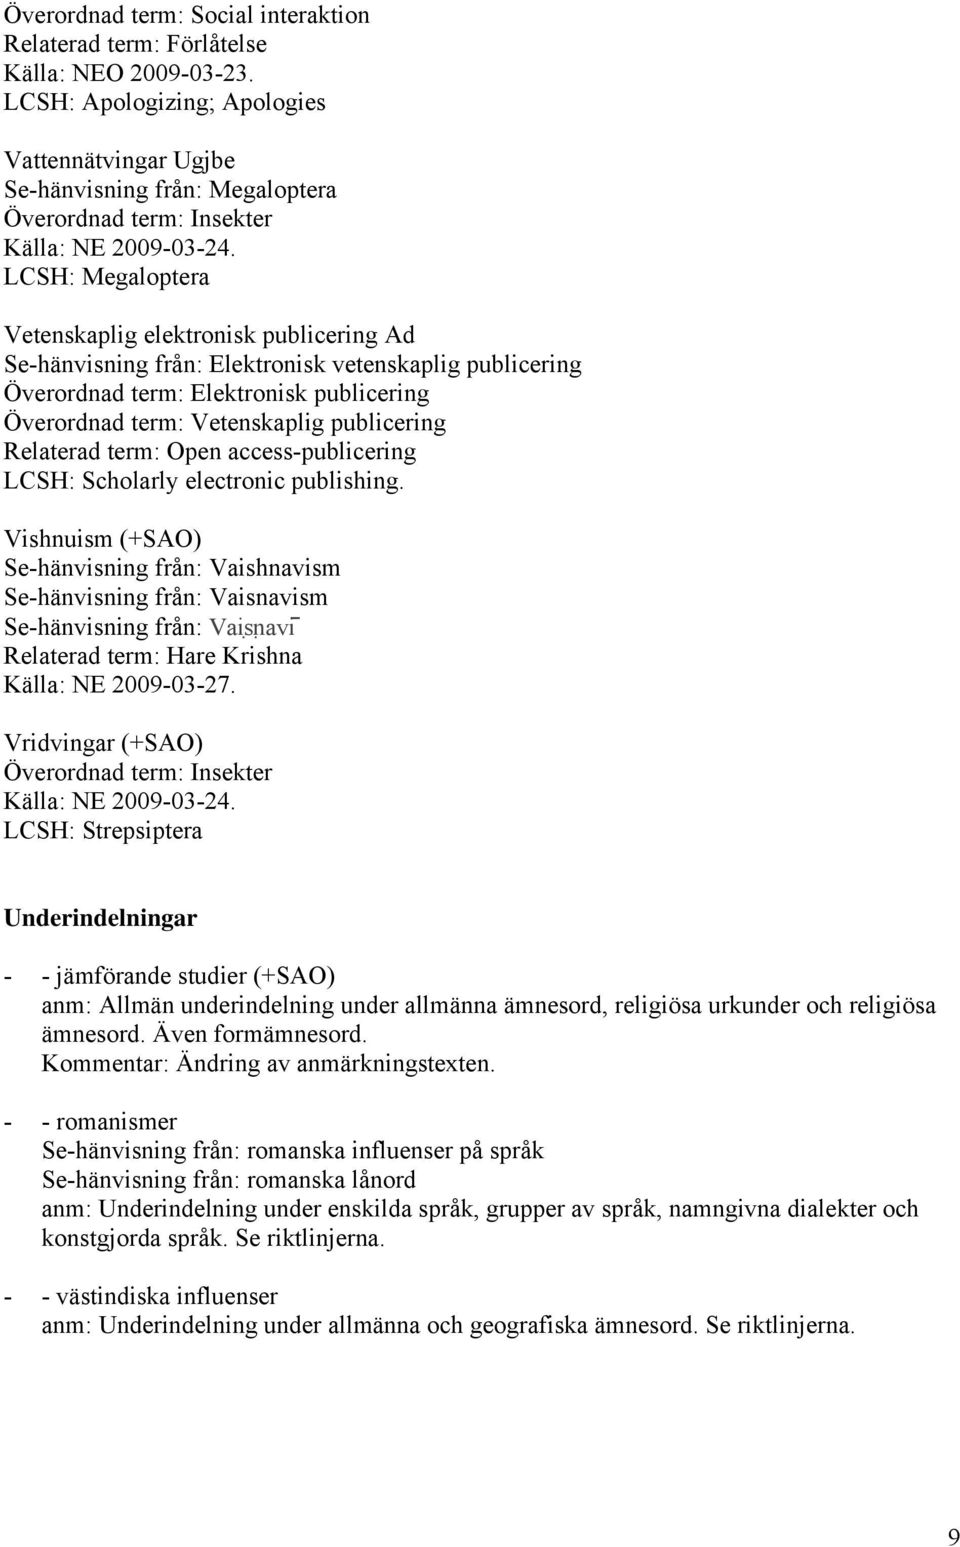 Överordnad term: Elektronisk publicering Överordnad term: Vetenskaplig publicering Relaterad term: Open access-publicering LCSH: Scholarly electronic publishing.